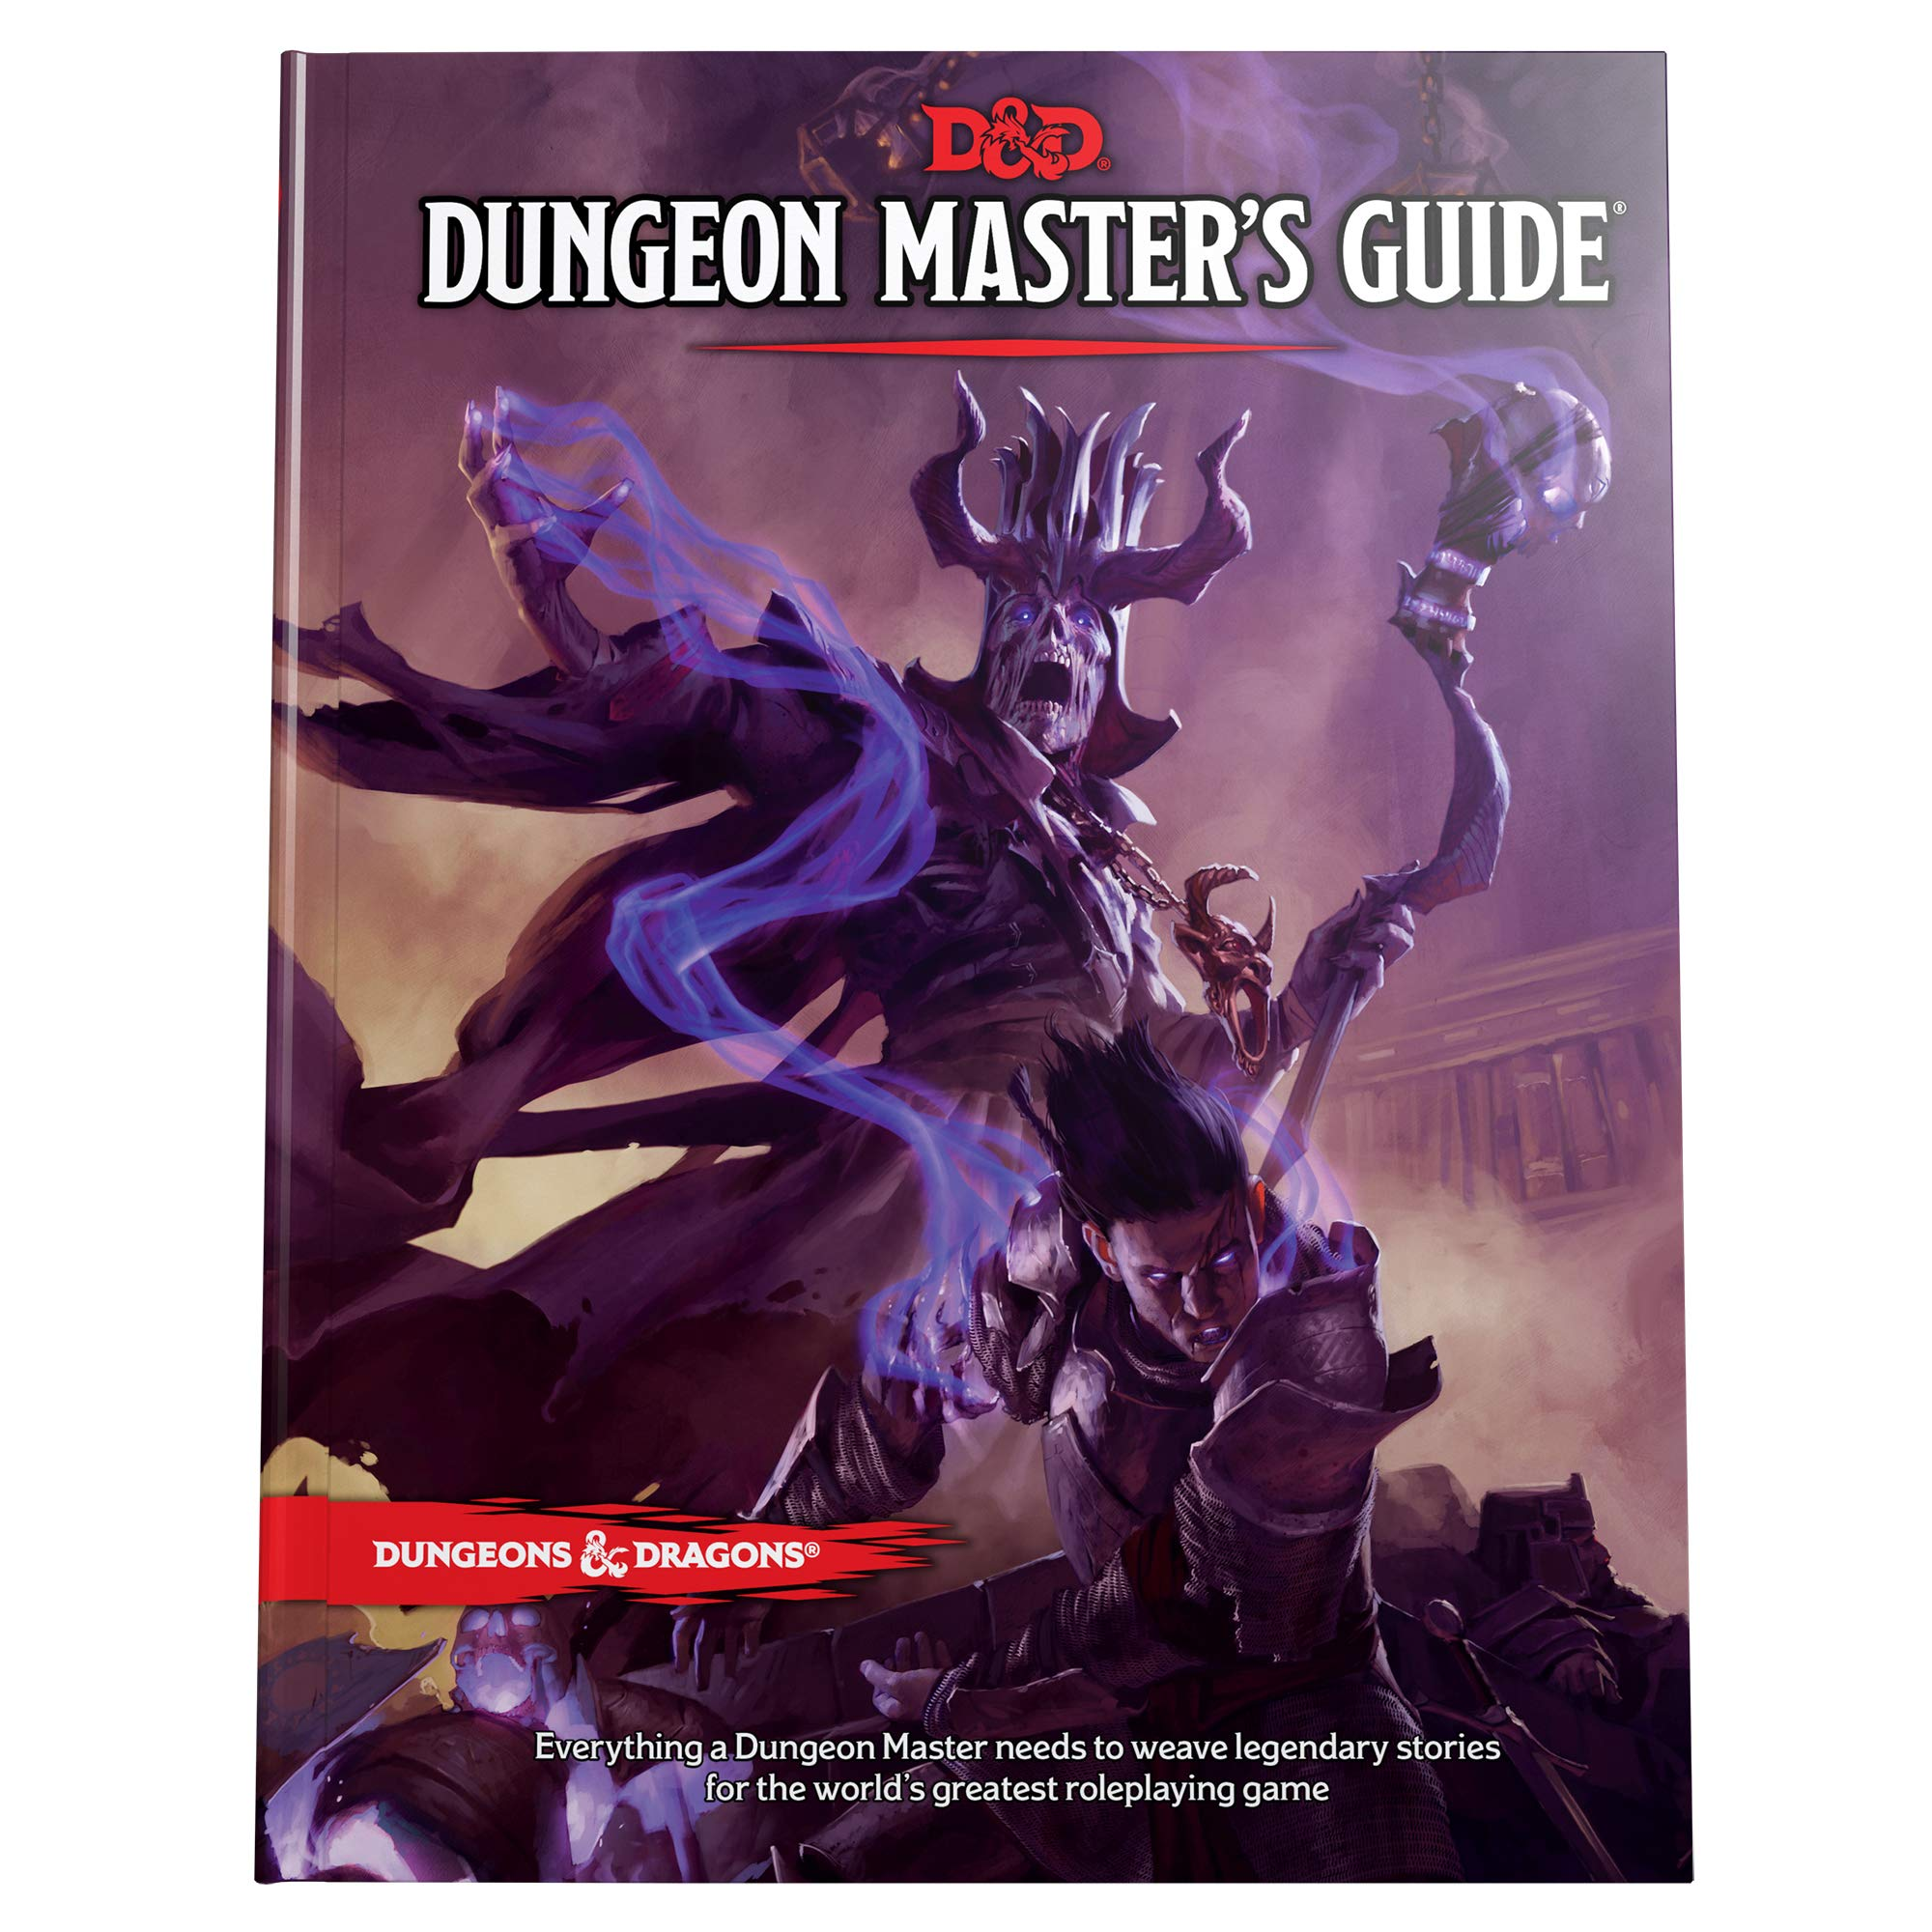 Dungeon Master's Guide (D&D Core Rulebook) by Wizards of the Coast